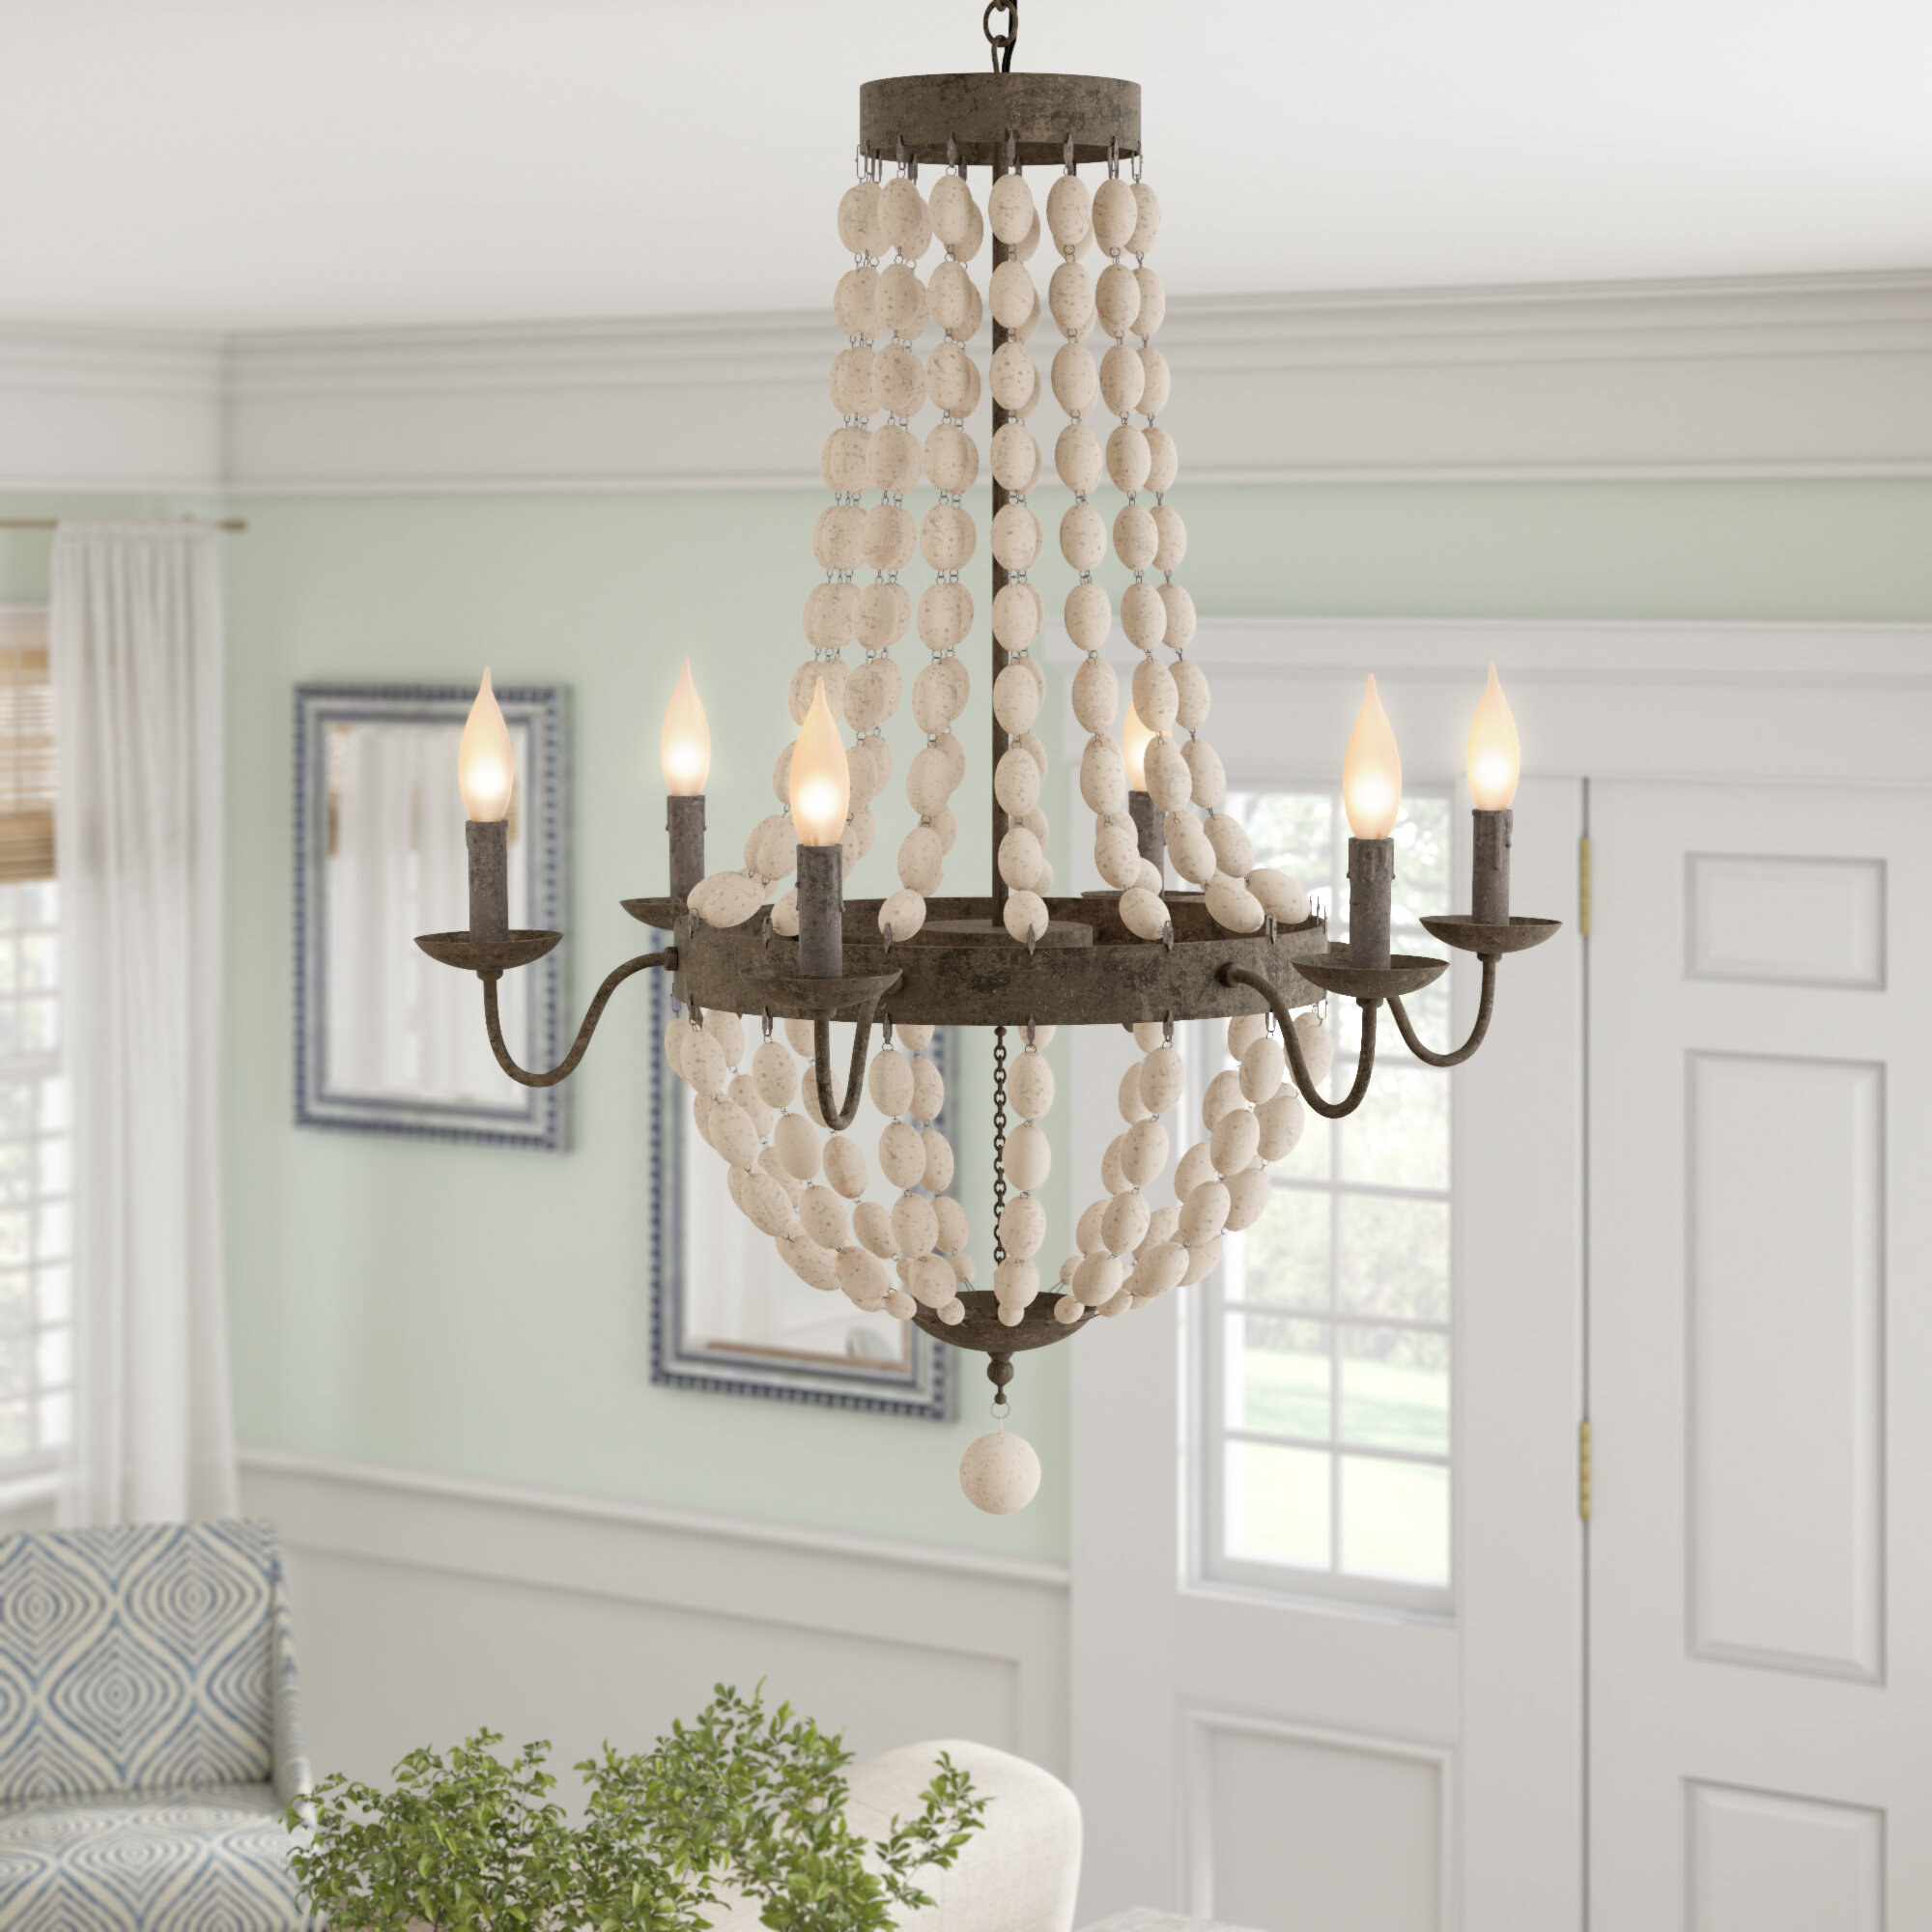 Bargas 6 Light Empire Chandelier Throughout Duron 5 Light Empire Chandeliers (View 5 of 30)